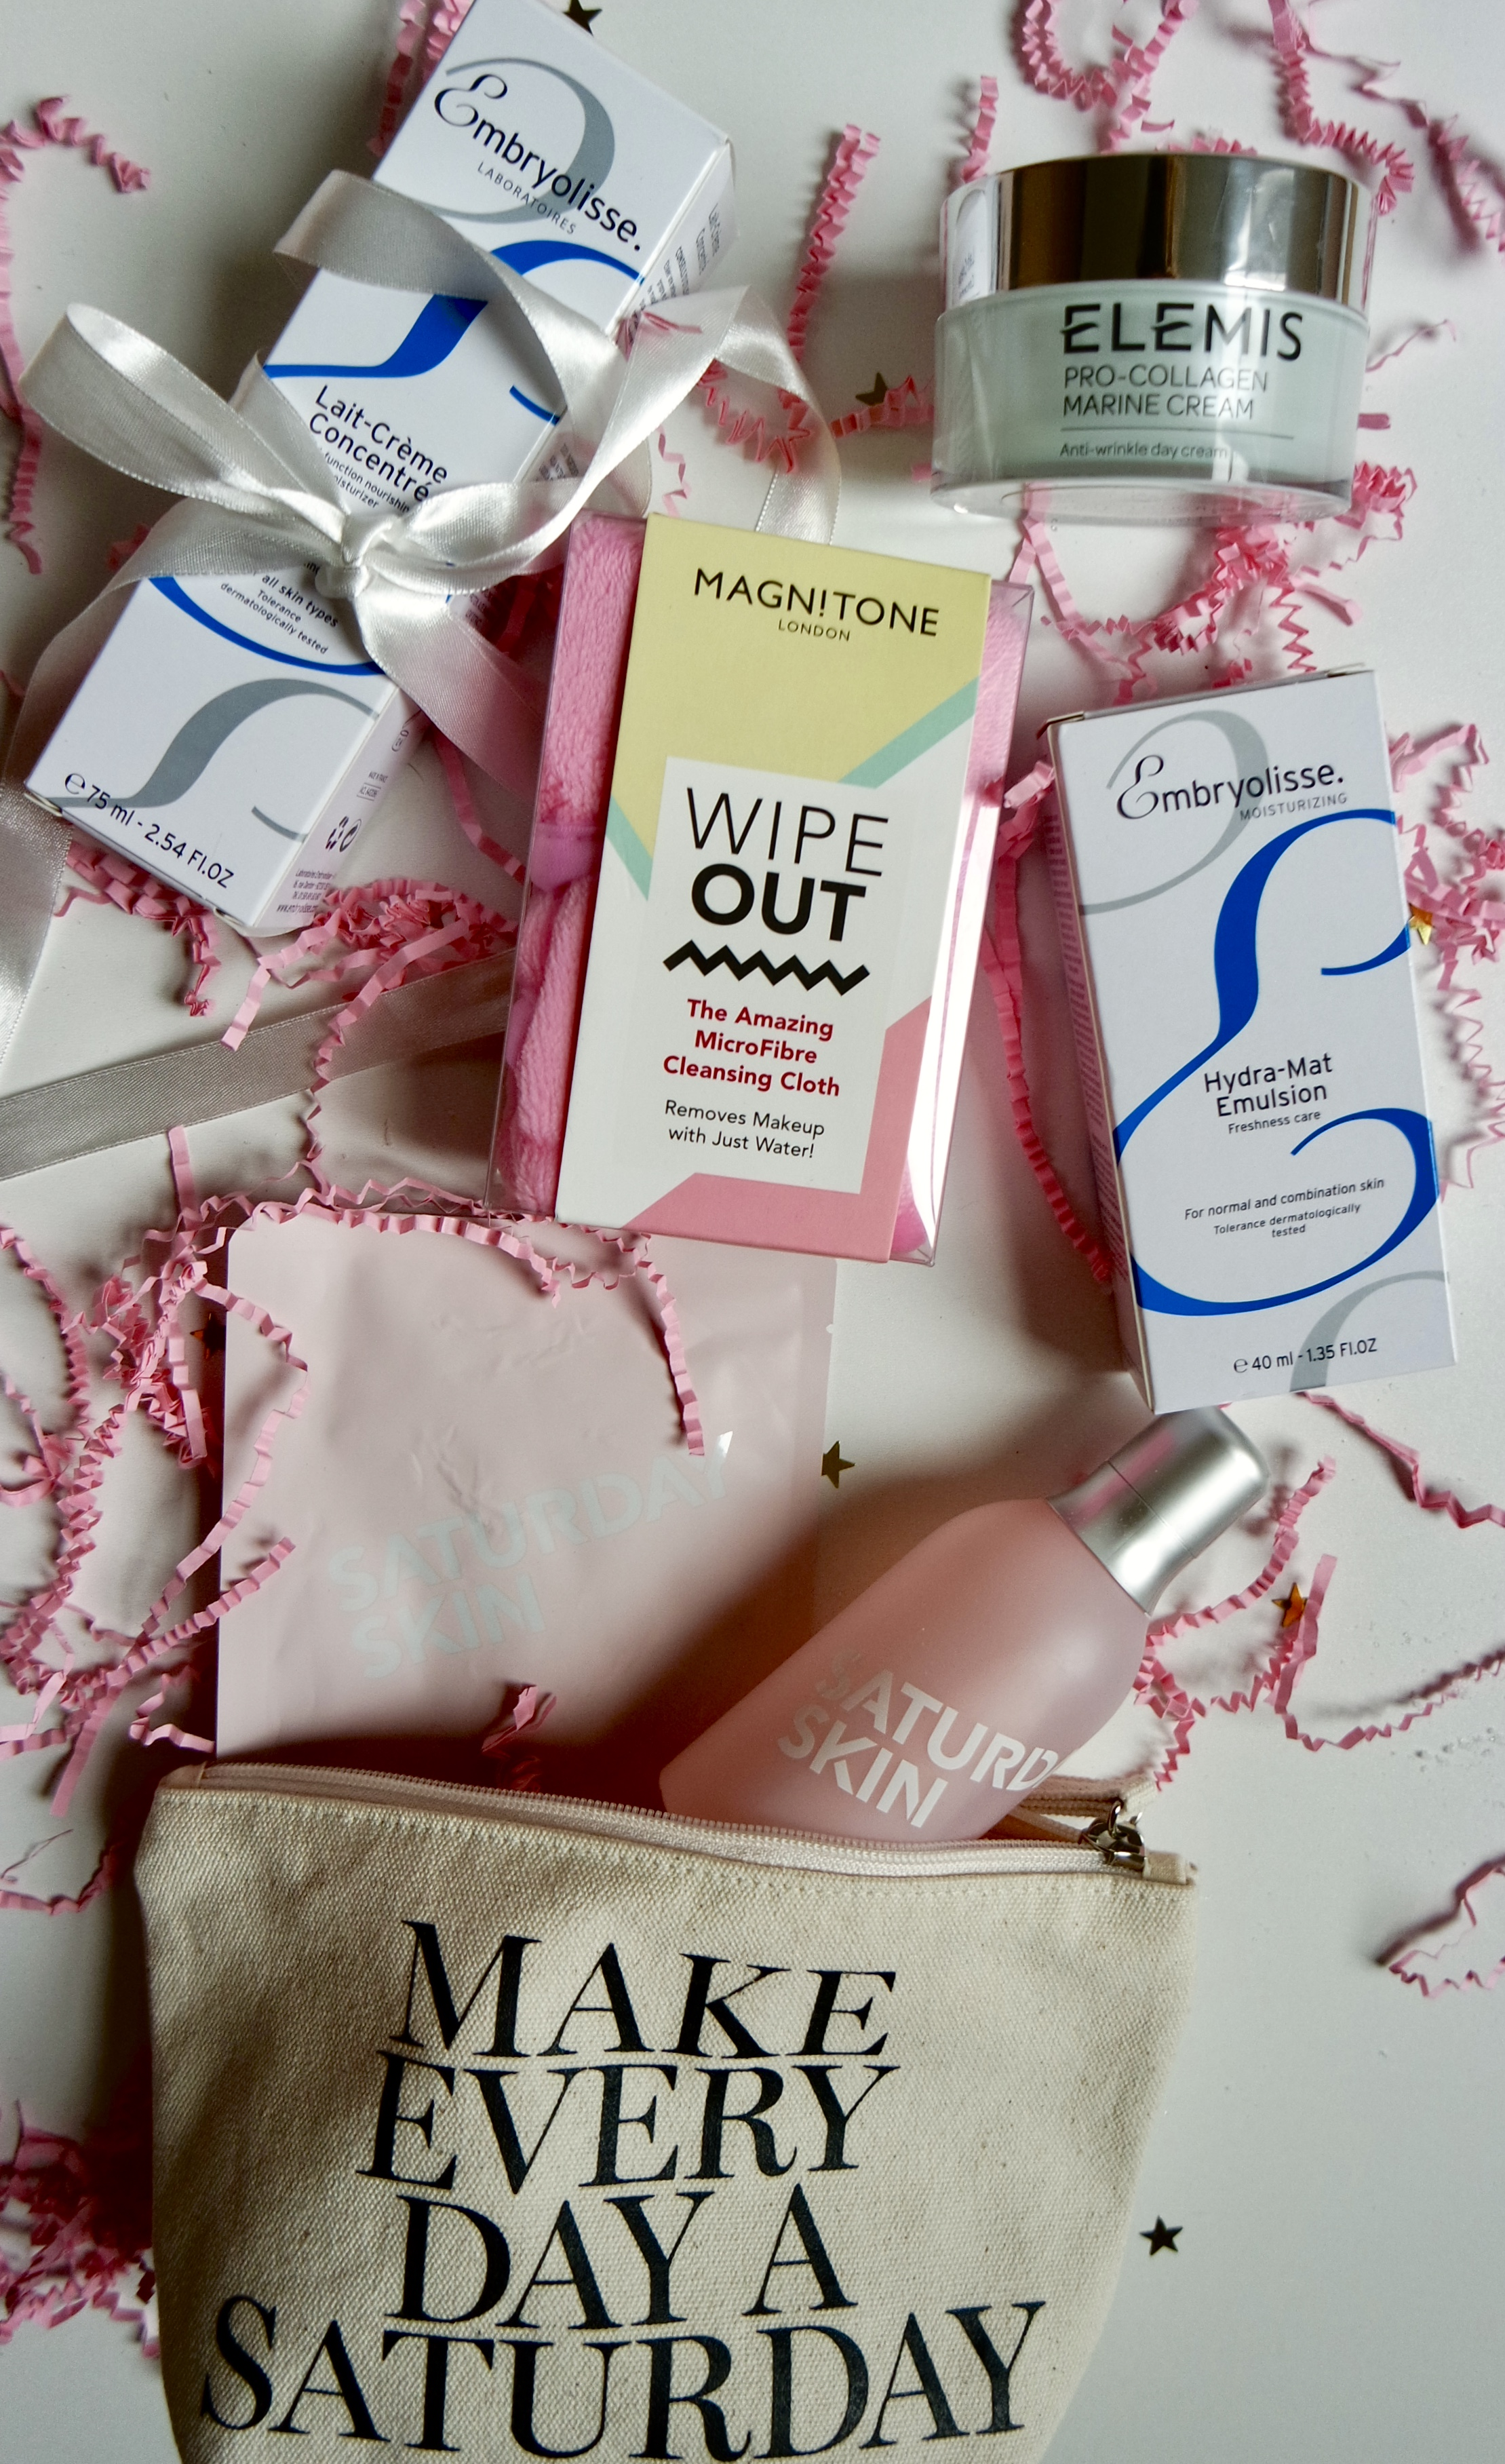 Beauty Christmas Gift Guide Flatlay of skincare products on white background with pink confetti around - Embryolisse, Elemis, Magnitone, Saturday skin products